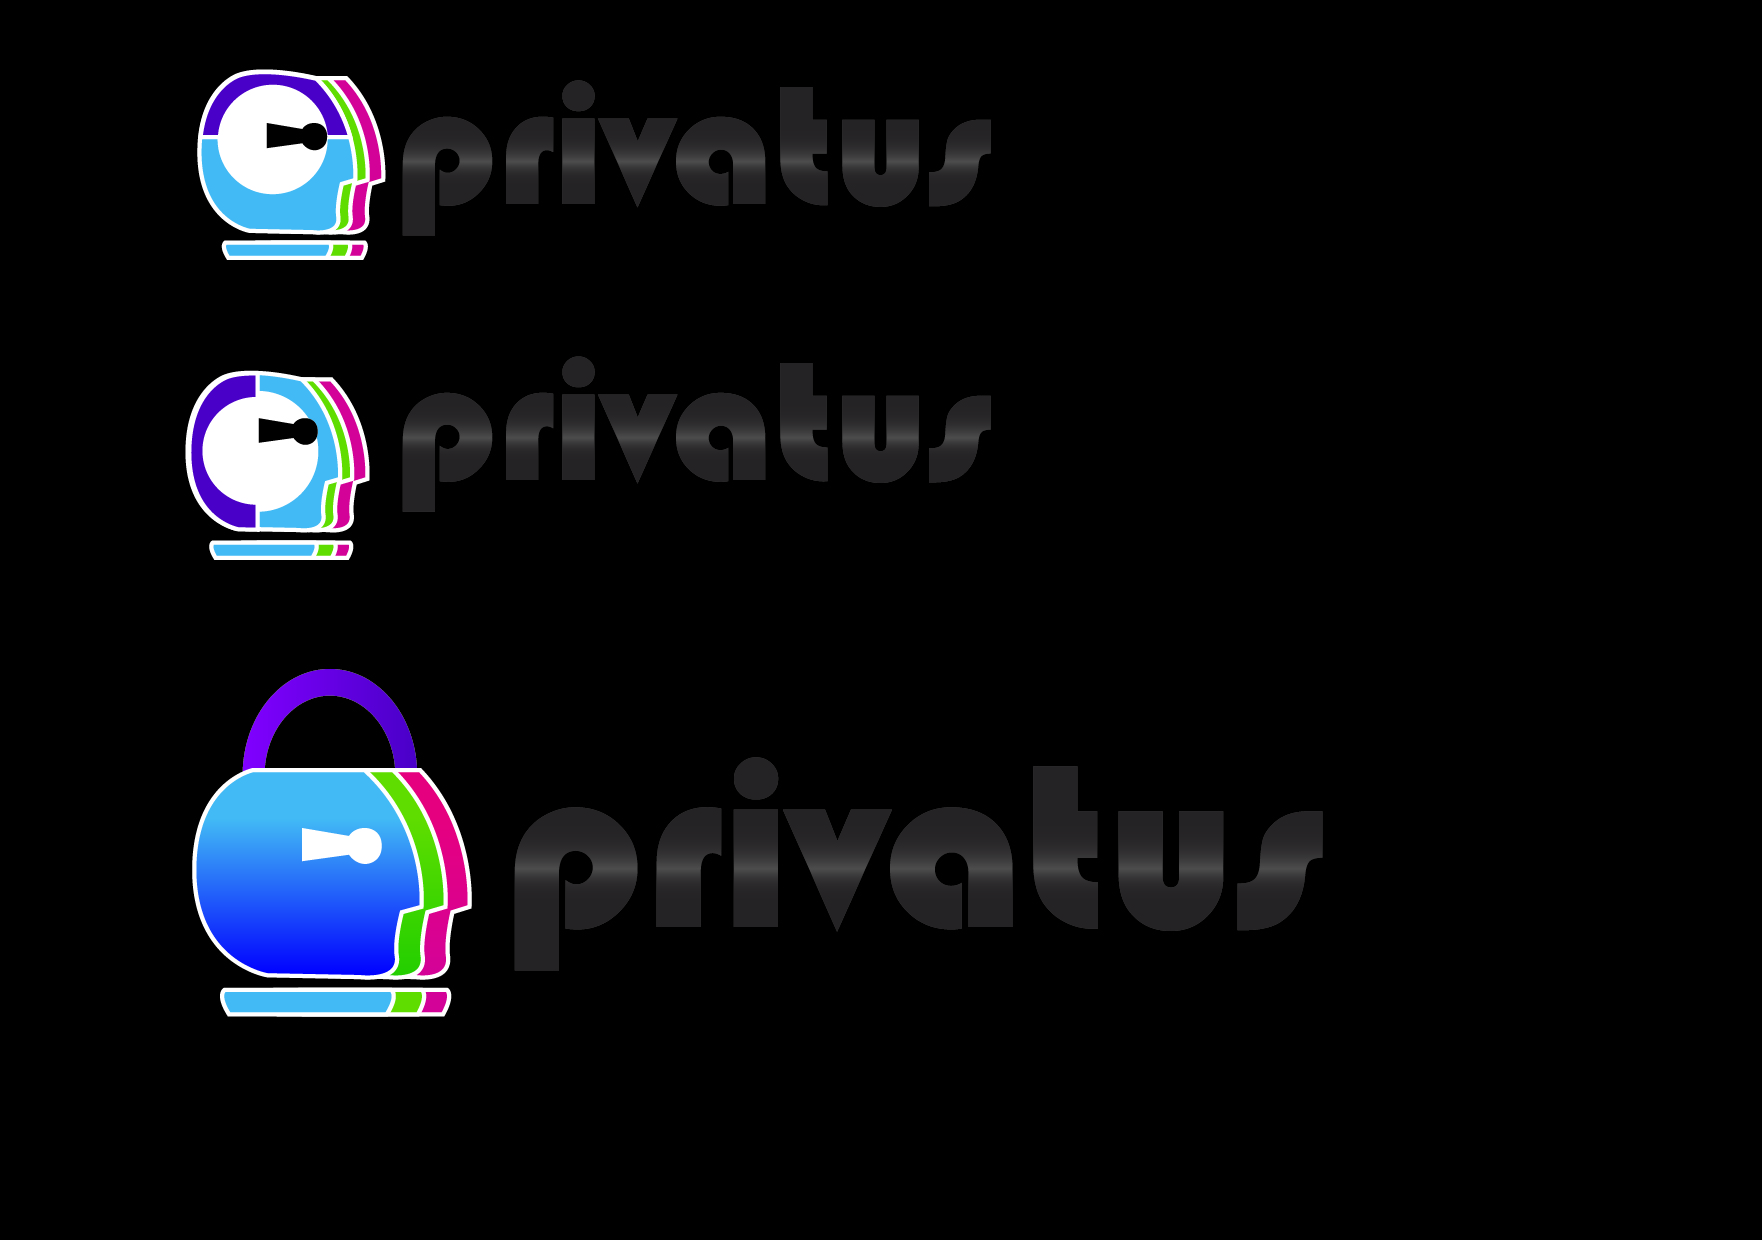 Logo Design by Jonathan Aclado - Entry No. 63 in the Logo Design Contest New Logo Design for privatus.